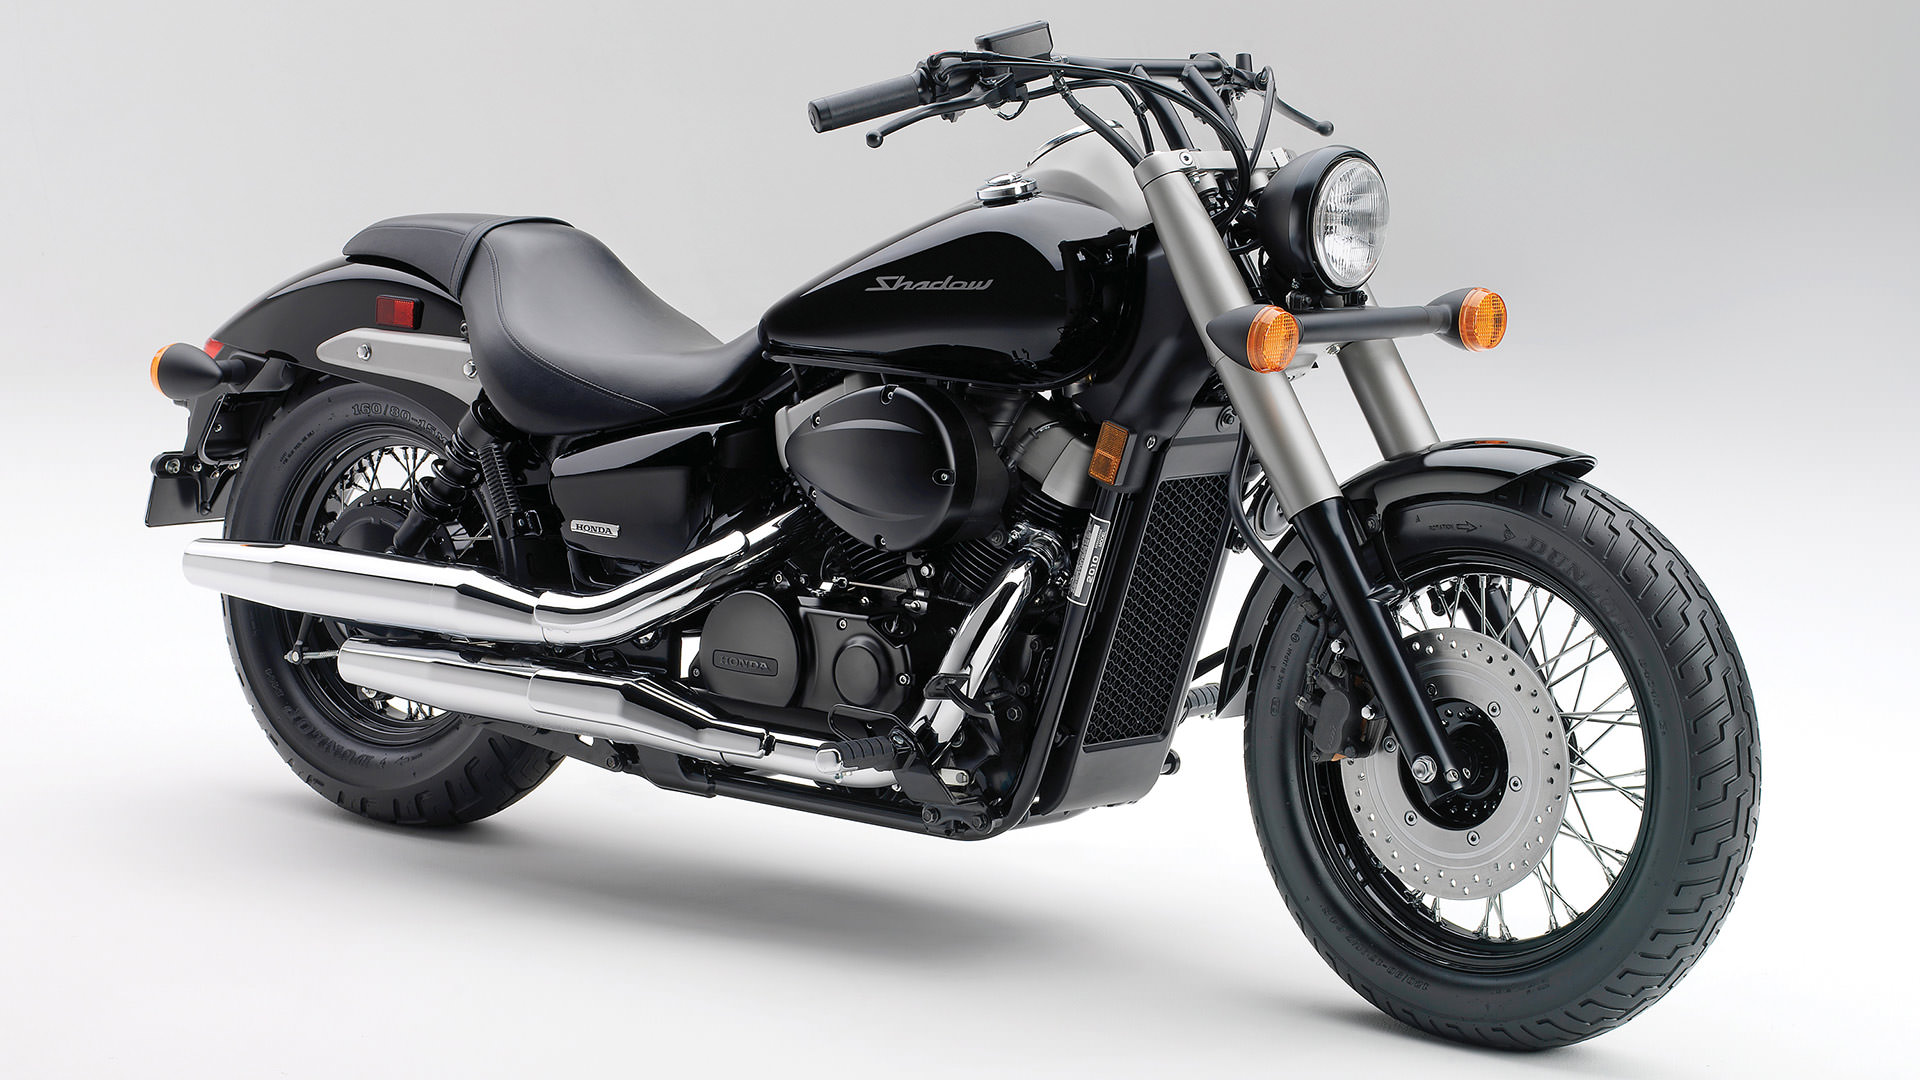 2016 honda shadow phantom 750 review specs pictures videos honda pro kevin. Black Bedroom Furniture Sets. Home Design Ideas